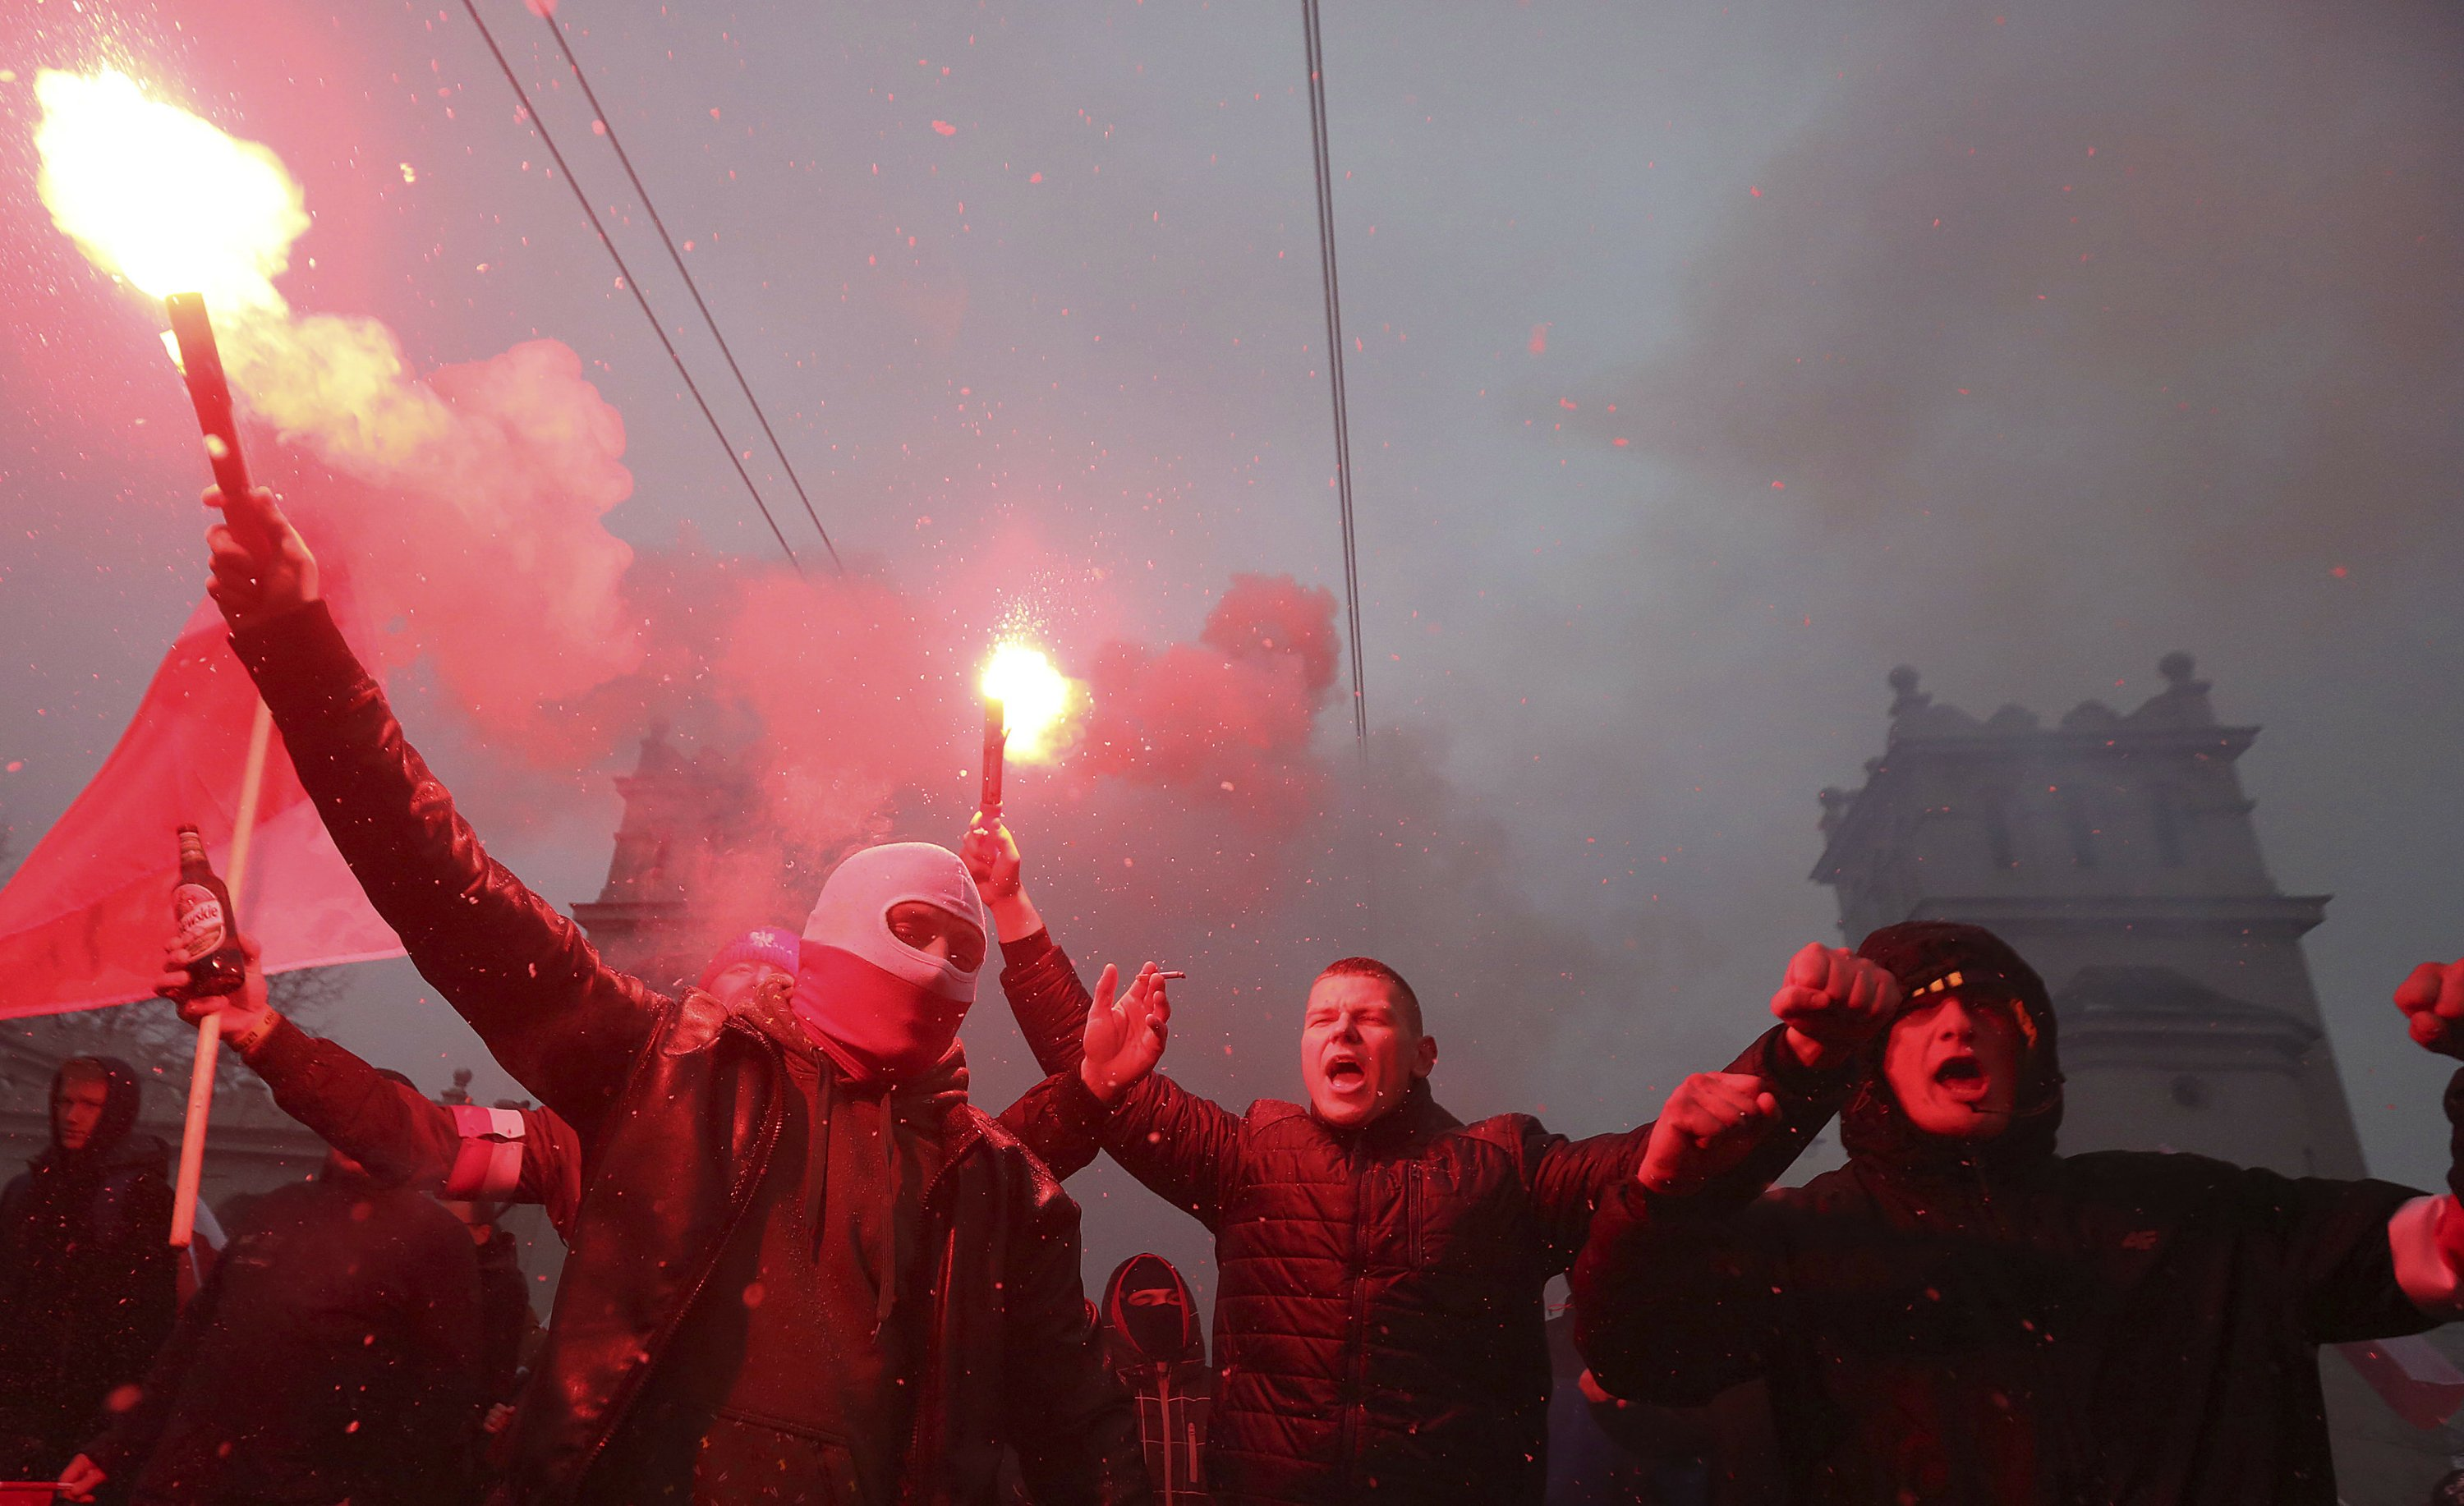 Polish far-right march goes global, drawing people from afar